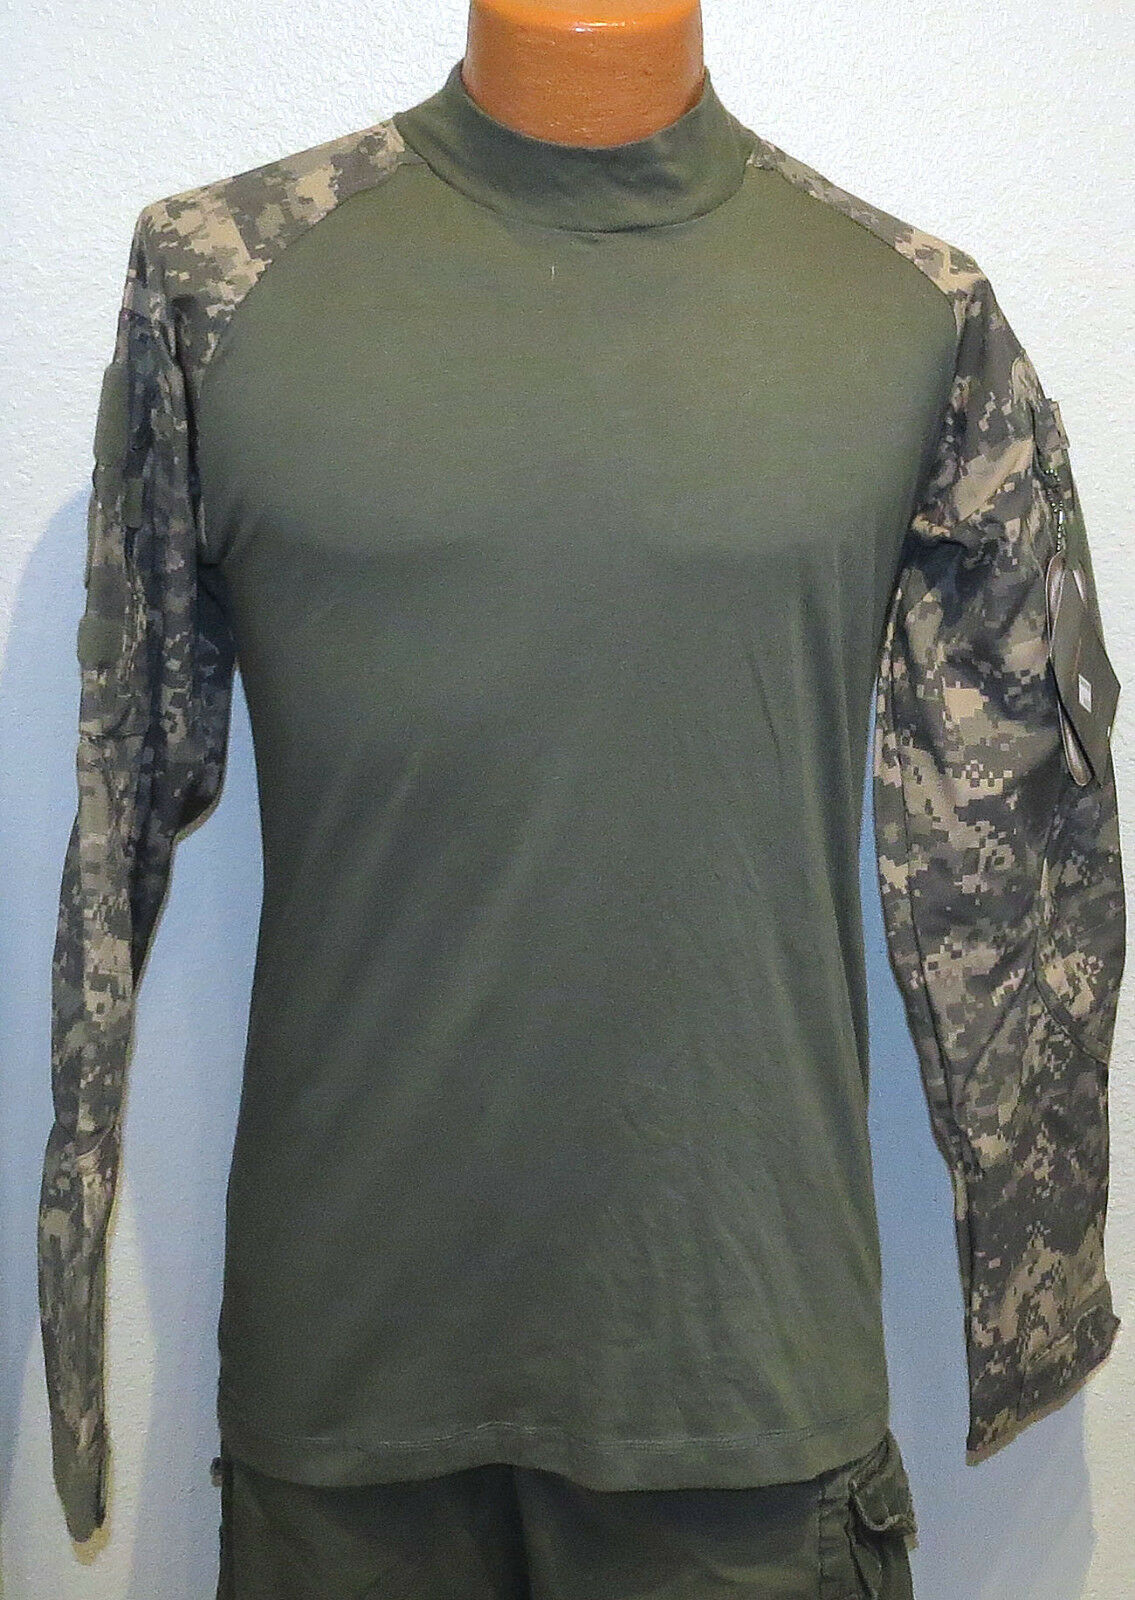 d107644f0ed Cordura Base Layer OLIVE & DESERT CAMO Shirt MED Tru New NWT military  hunting M